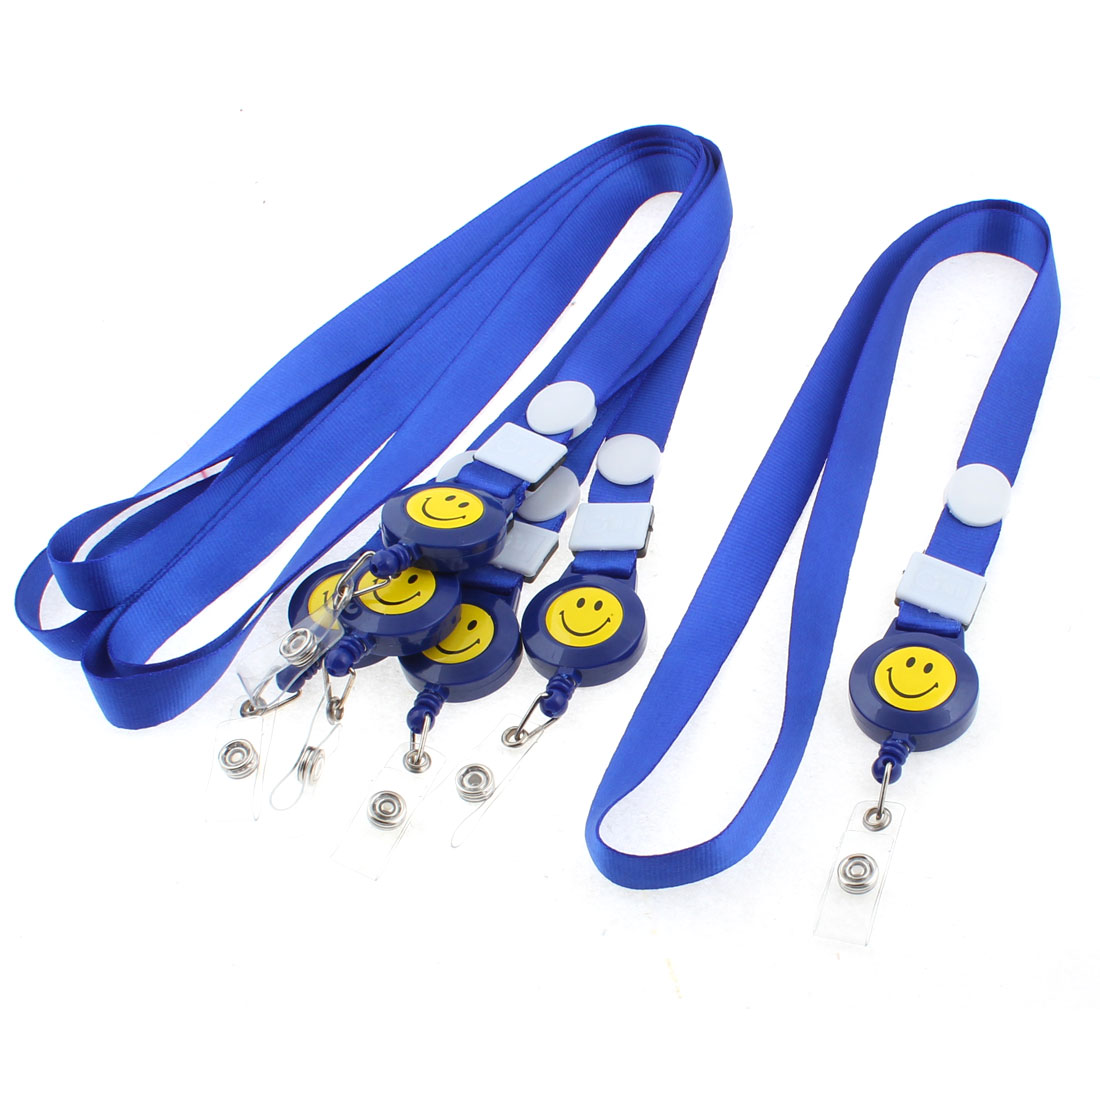 Photo Company Position Badge ID Card Holder Neck Strap Royal Blue 6PCS